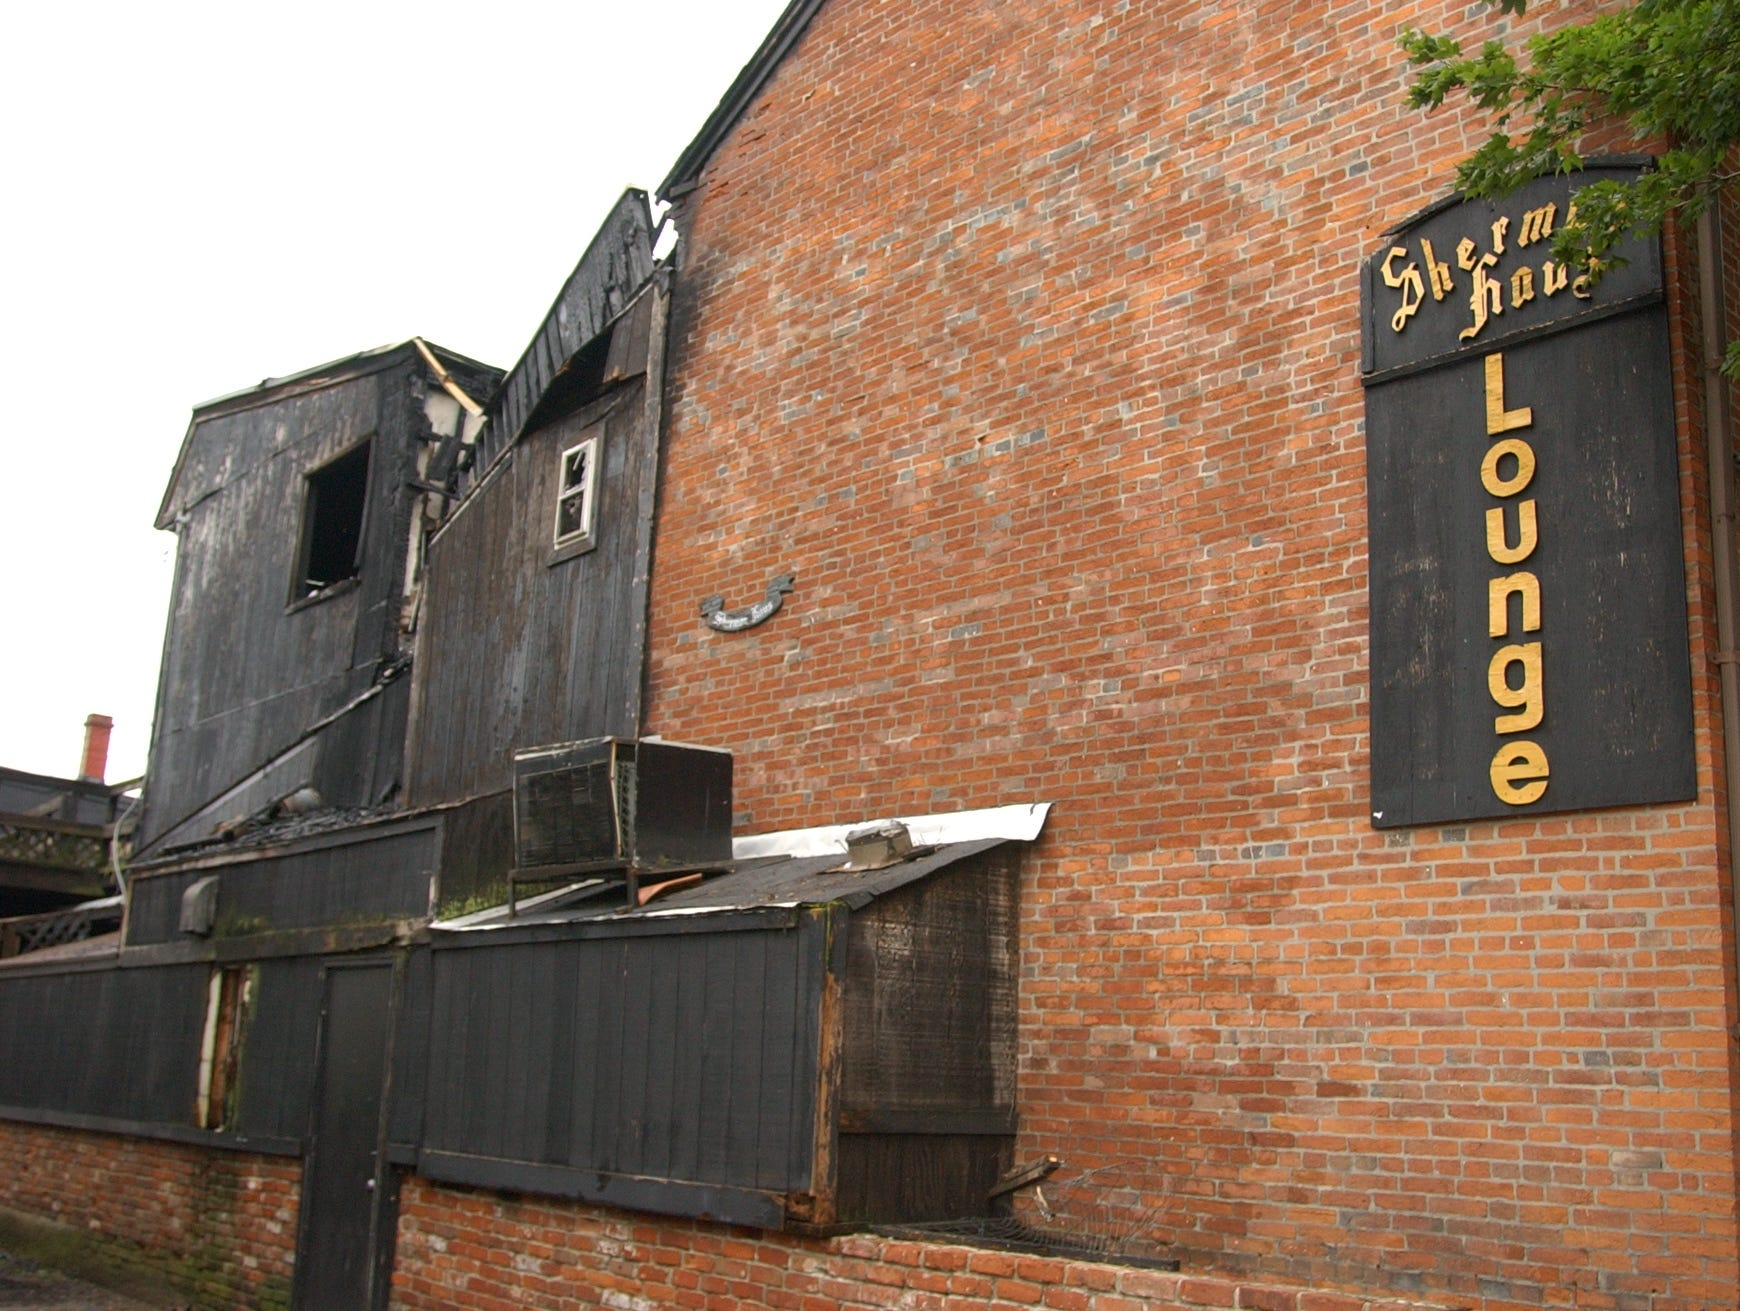 A July 22, 2007 fire heavily damaged the Sherman Haus on East Second Street.